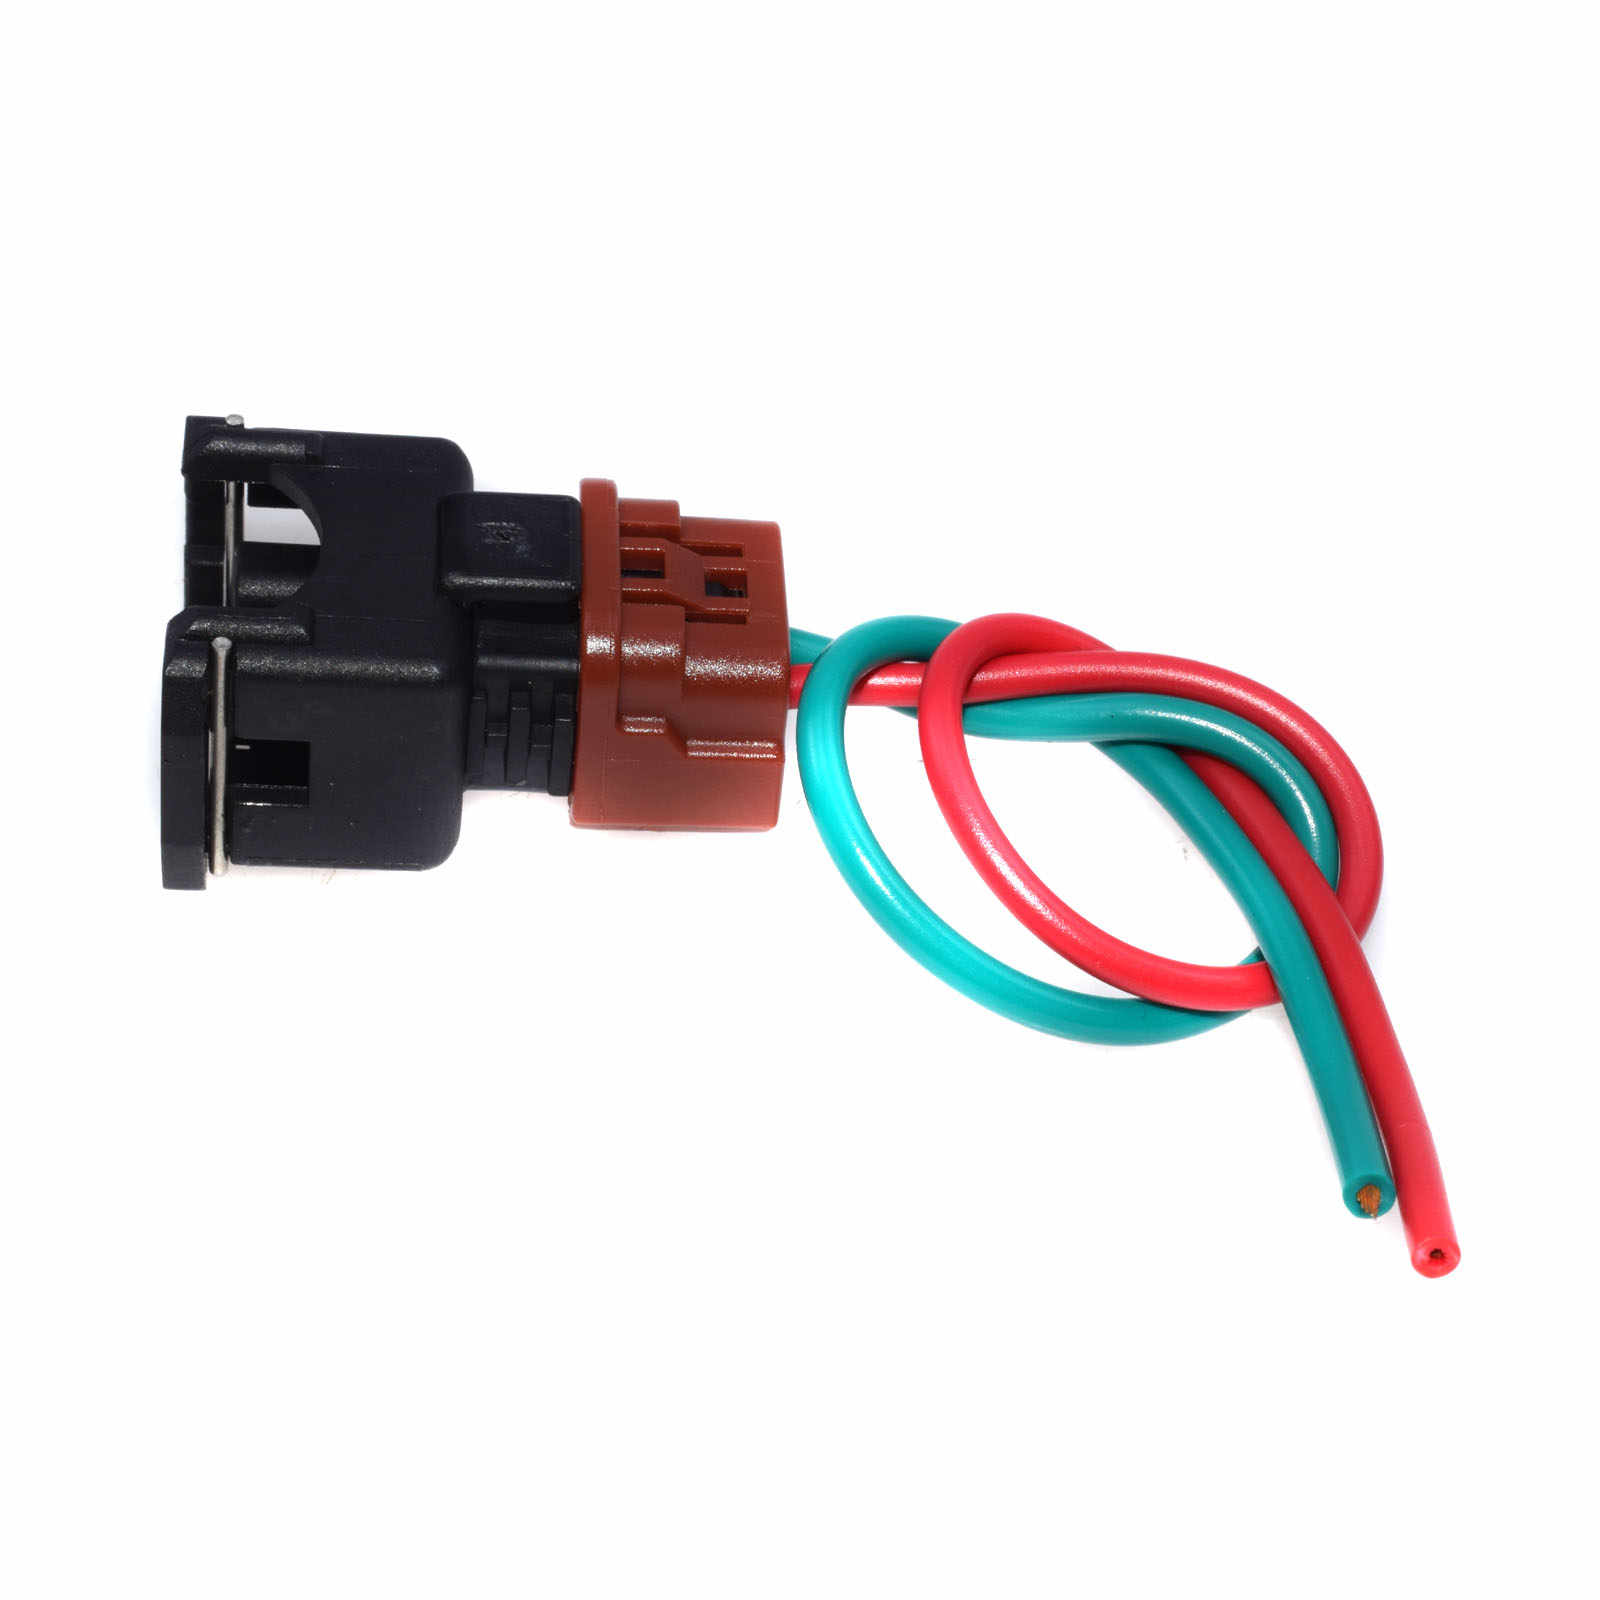 Fuel Injector Connectors Wiring Harness Fits Nissan 300zx 1990 ... on